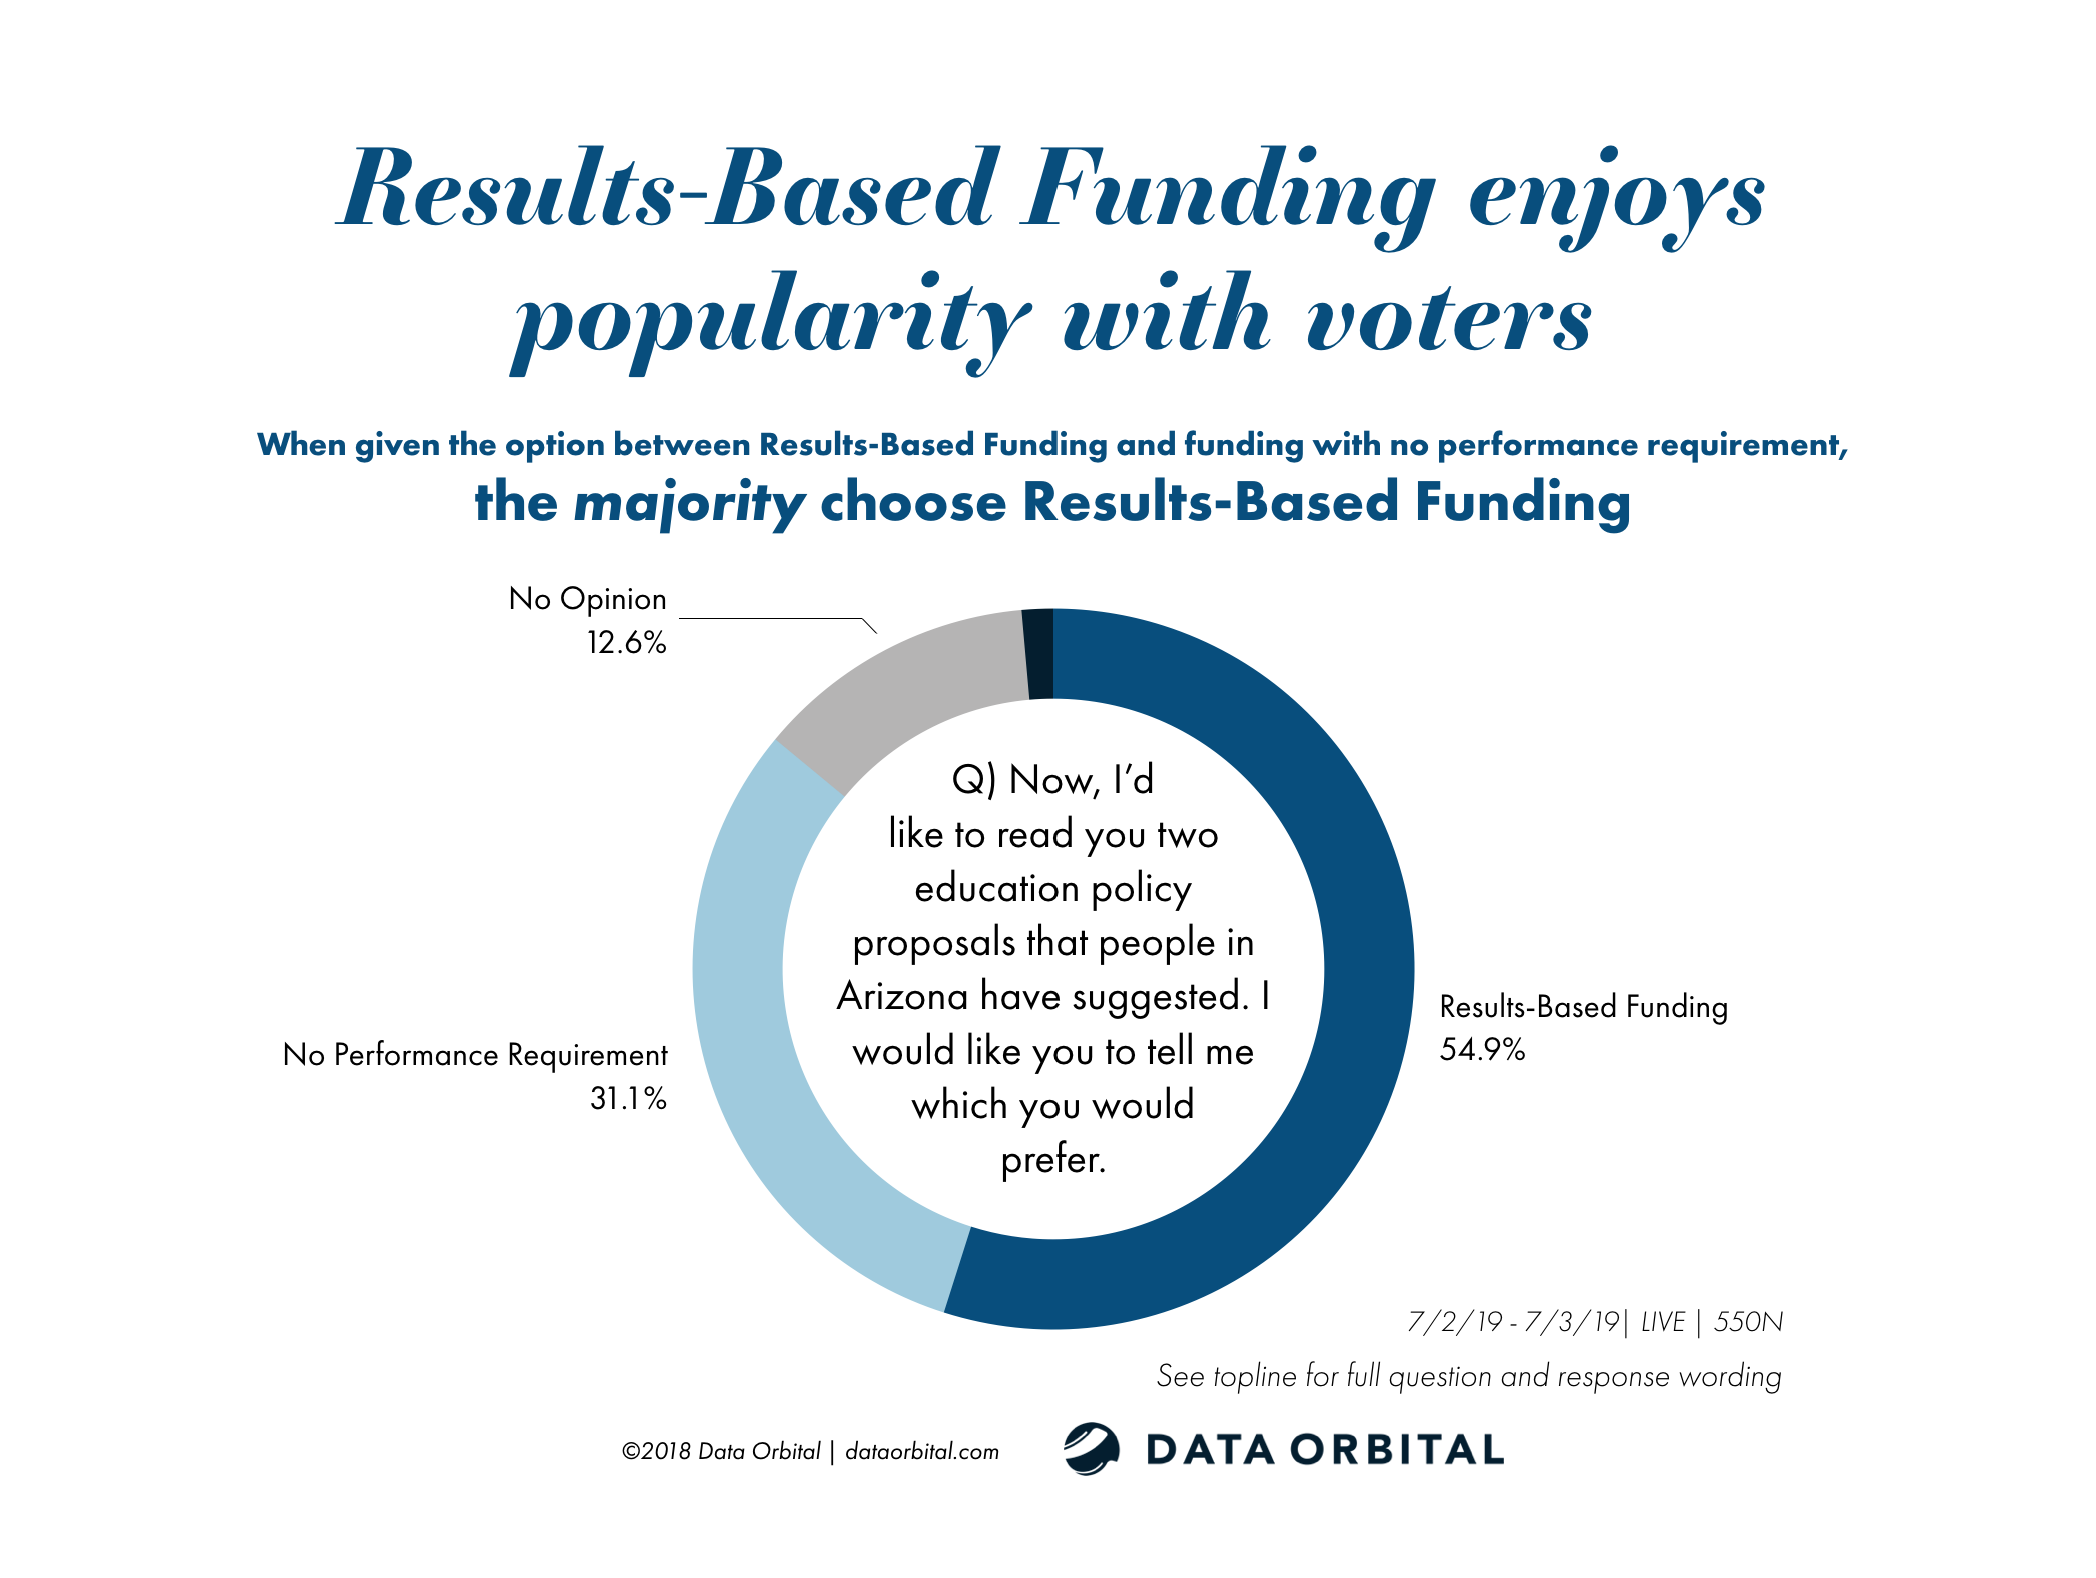 AZ Survey Results Based Funding Popular with Voters